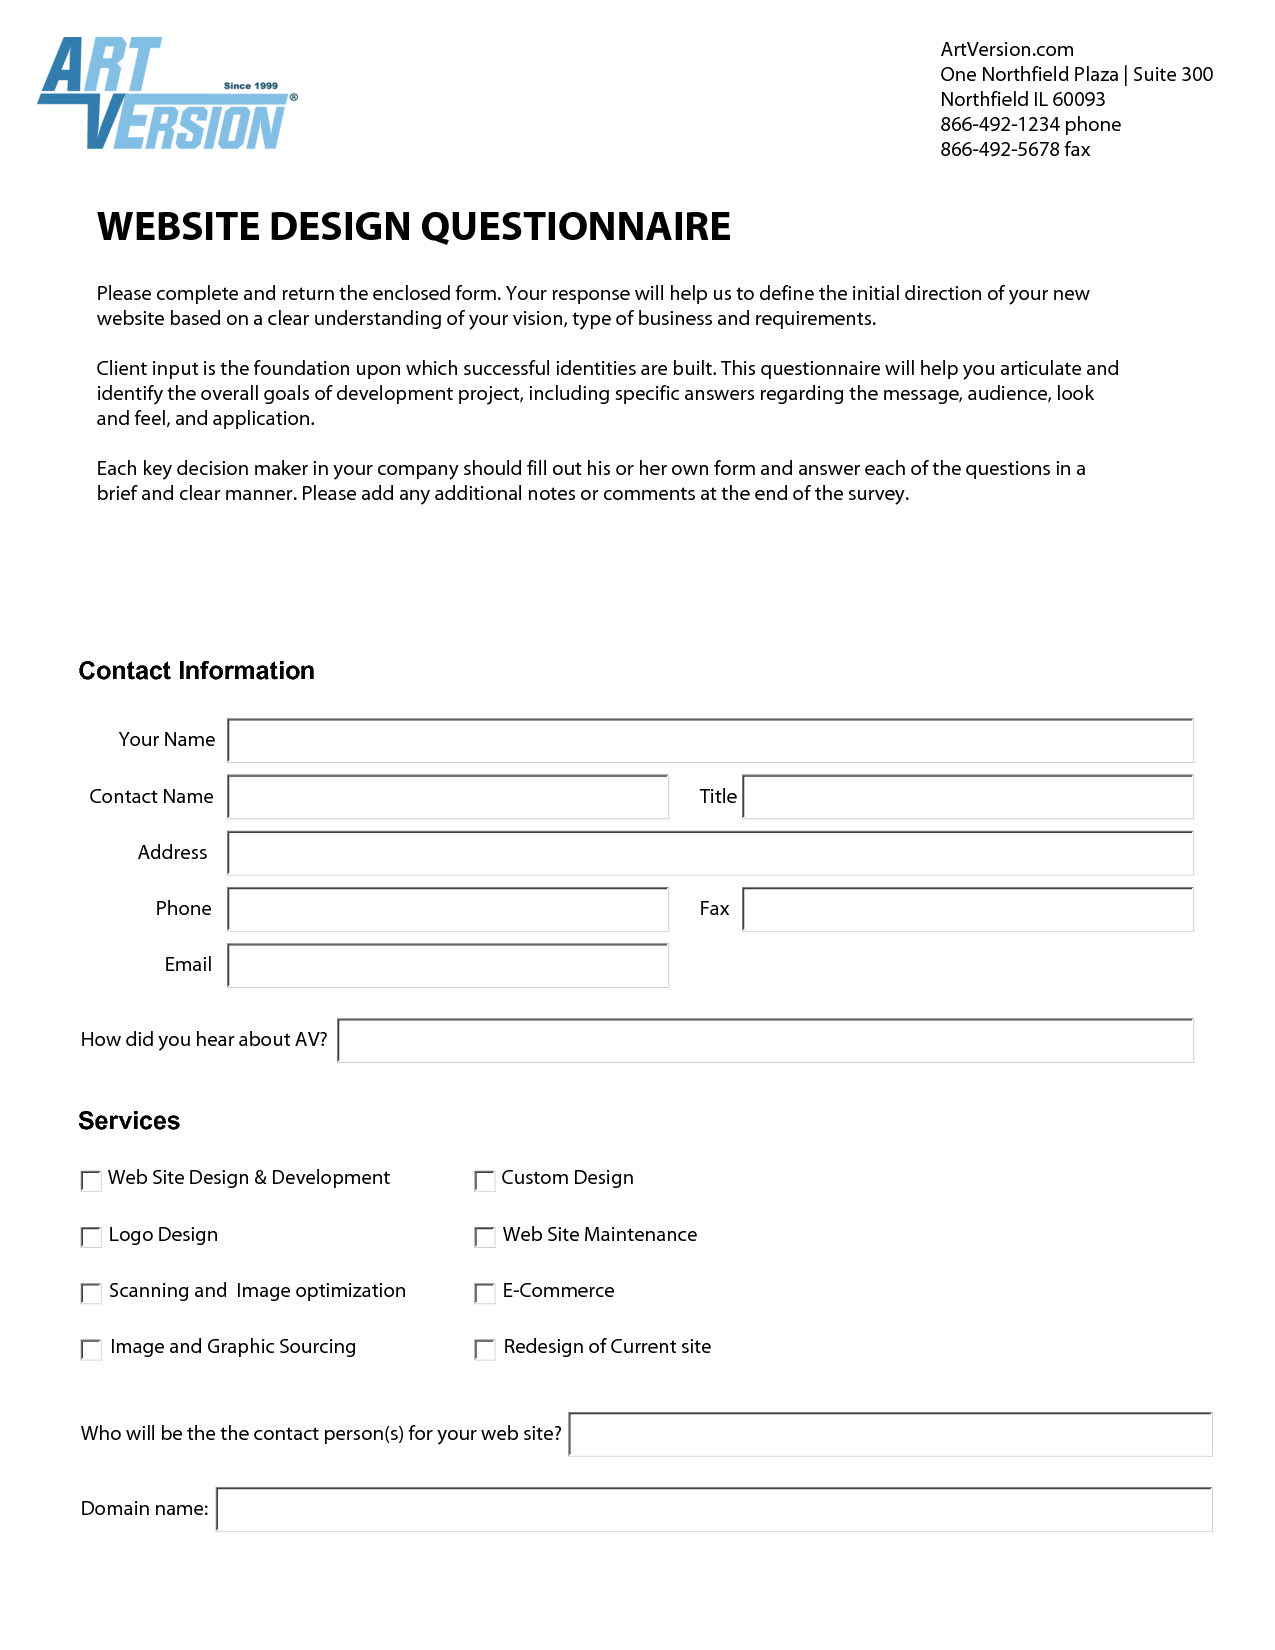 Website Design Questionnaire